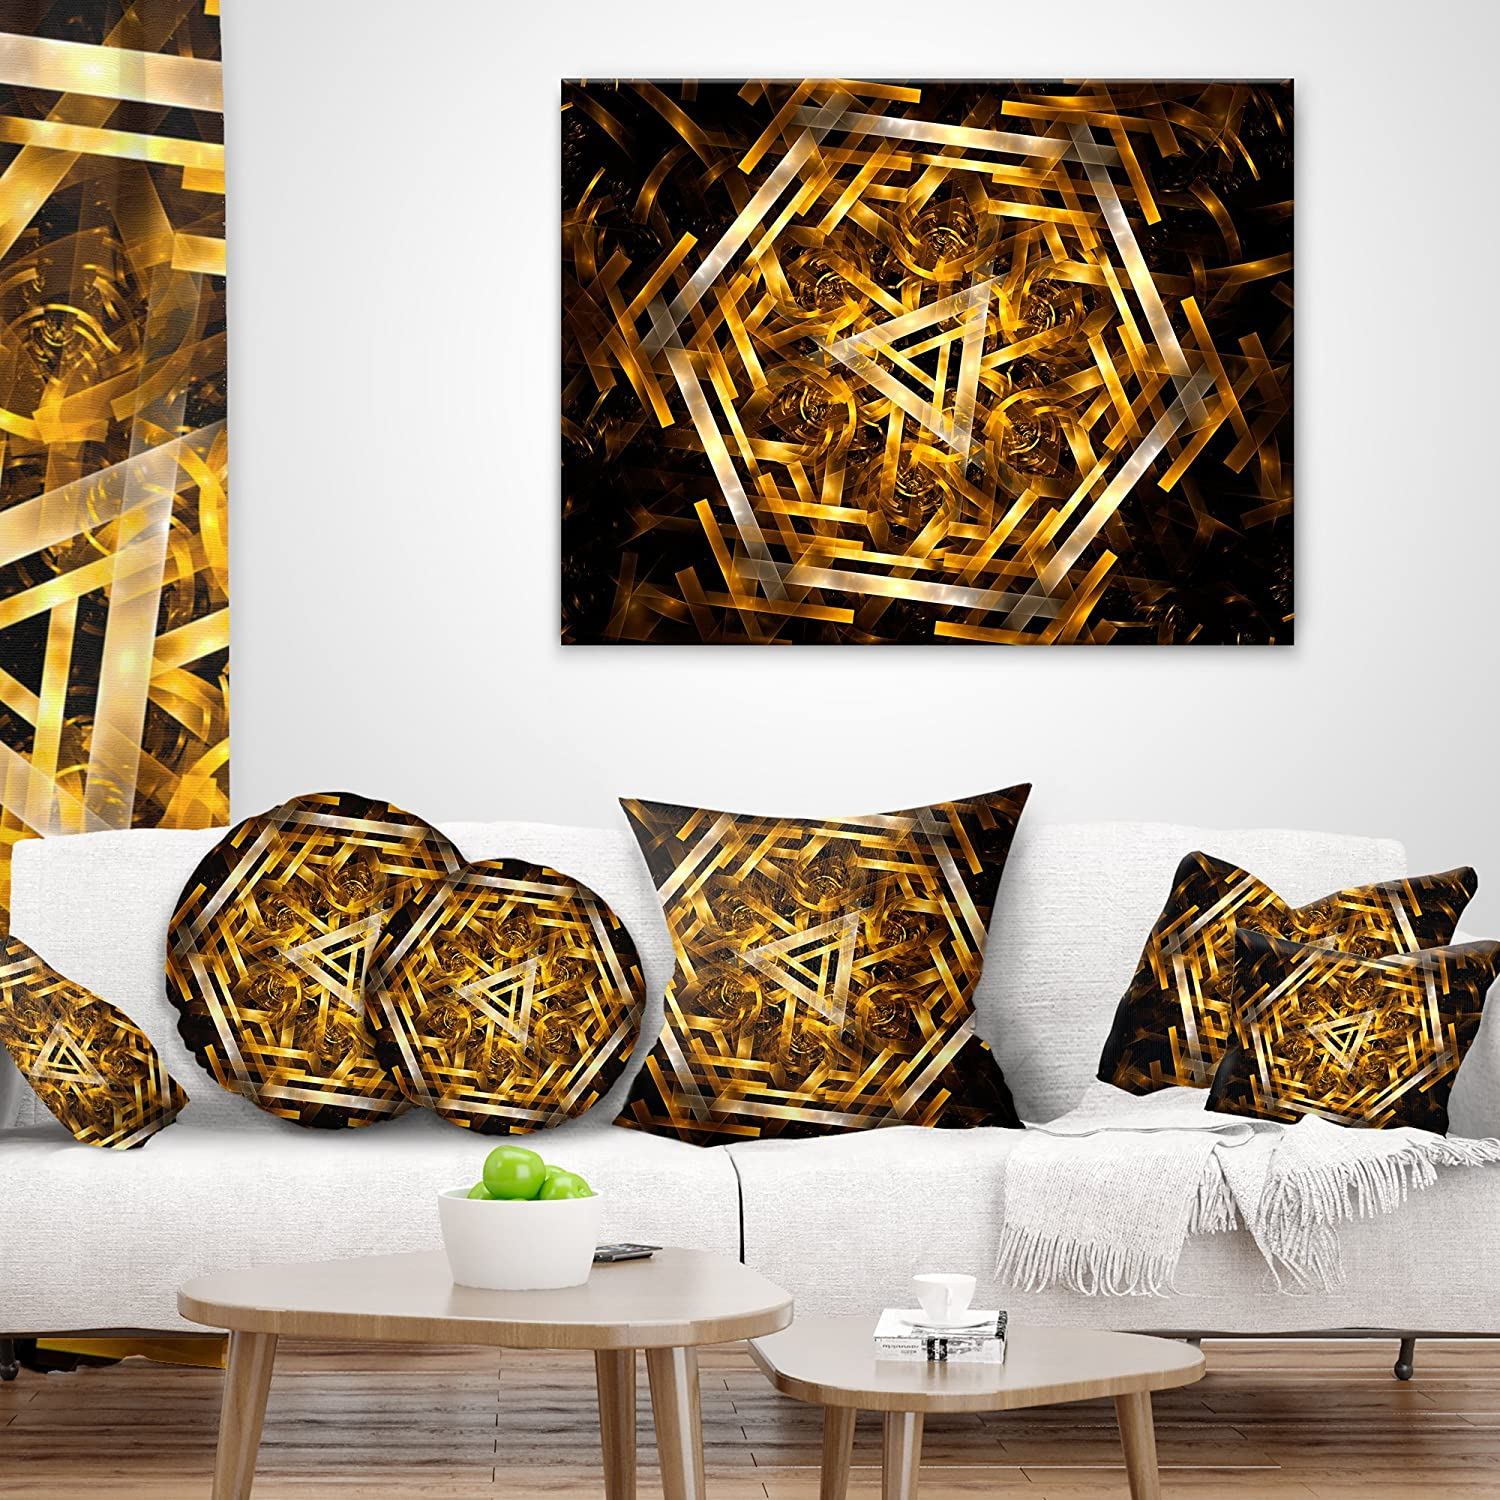 Designart Cu9290 16 16 Fractal 3d Yellowish Hexagon Contemporary Cushion Cover For Living Room In Sofa Throw Pillow 16 In Insert Printed On Both Side X 16 In Decorative Pillows Inserts Covers Throw